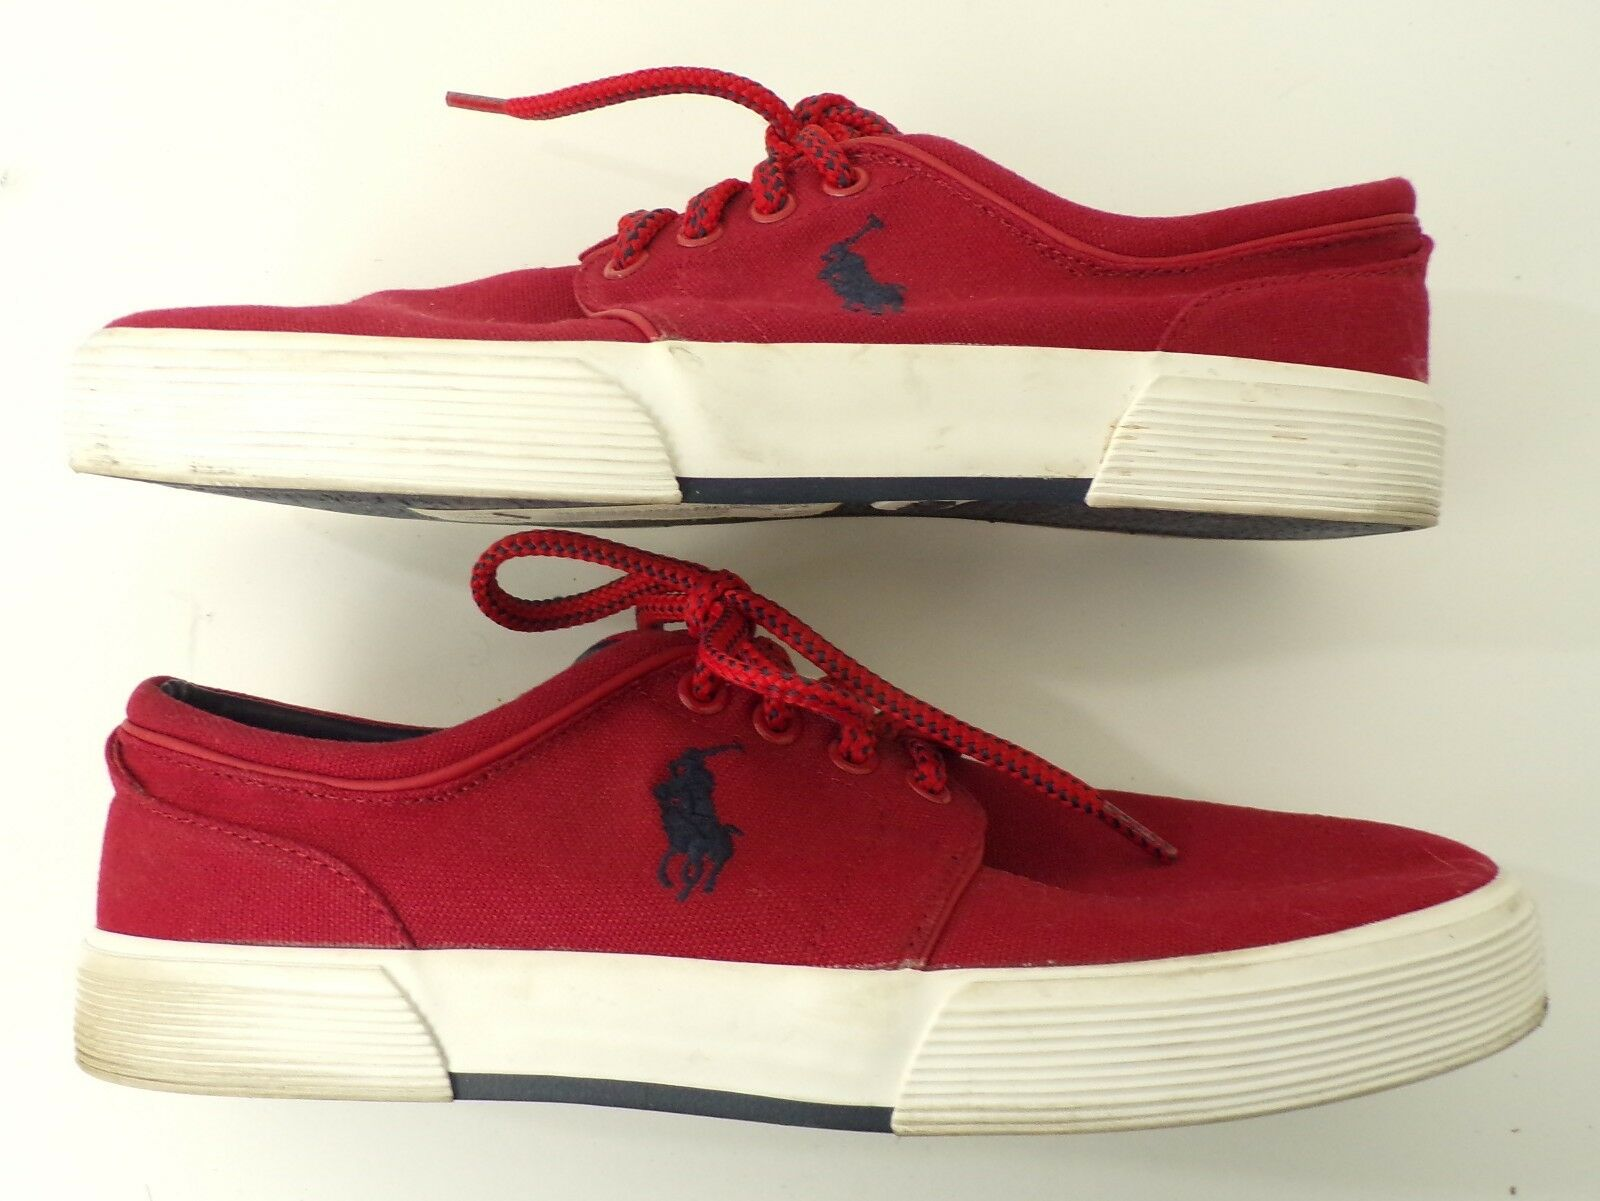 POLO RALPH LAUREN Mens Red Canvas Faxon Low Tie Casual Sneakers Size 8D